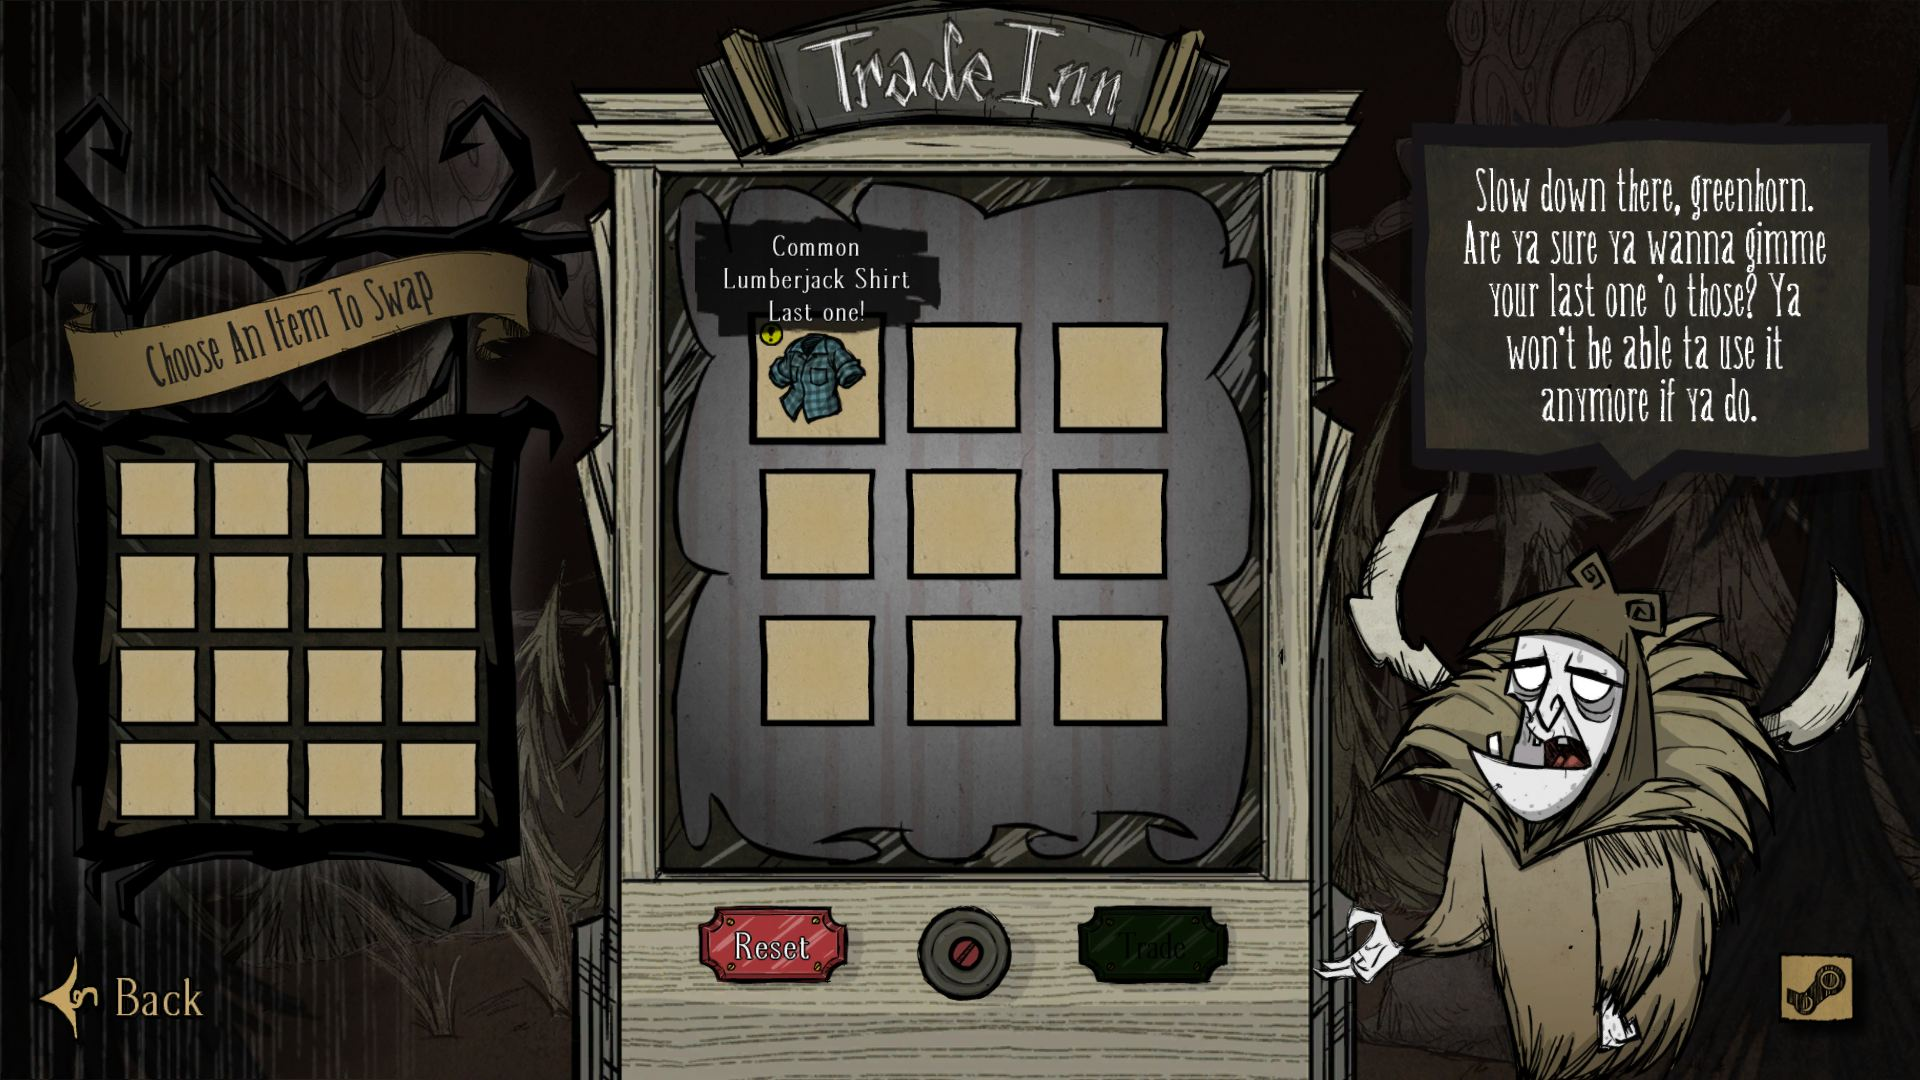 Dont Starve Together (Trade Inn)